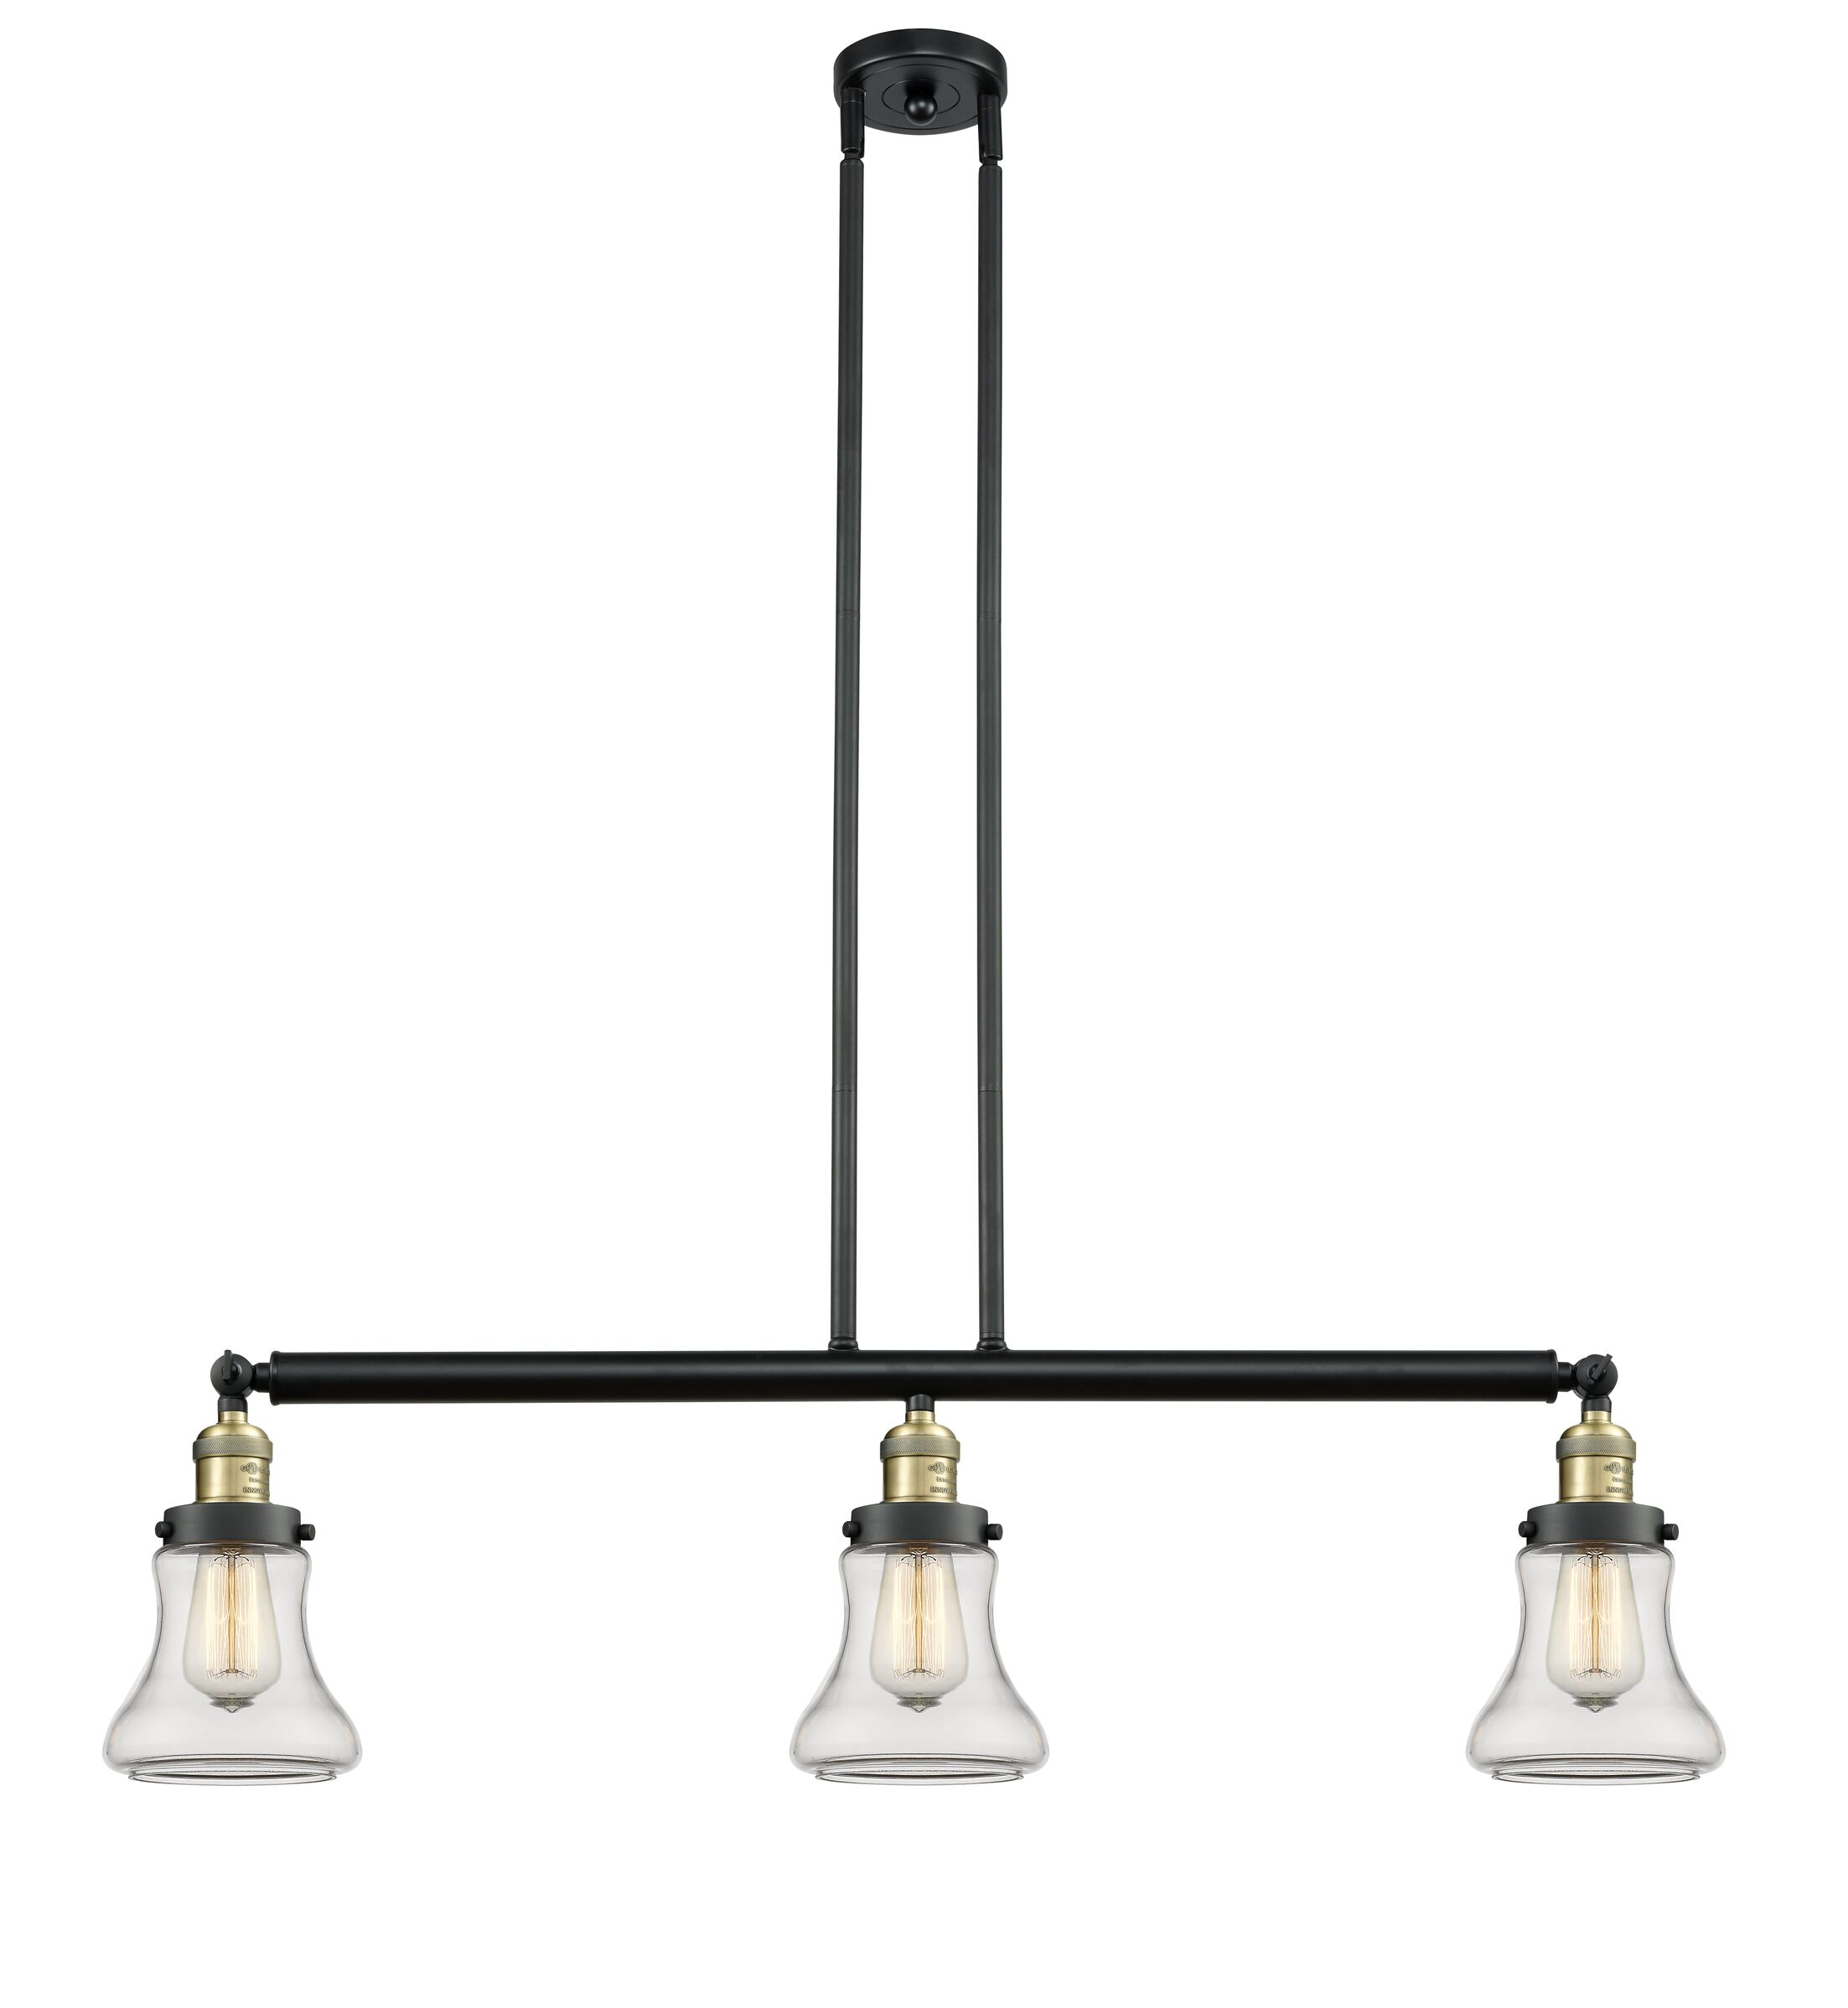 Nardone 3-Light Kitchen Island Pendant Shade Color: Clear, Bulb Type: Incandescent, Finish: Black Antique Brass